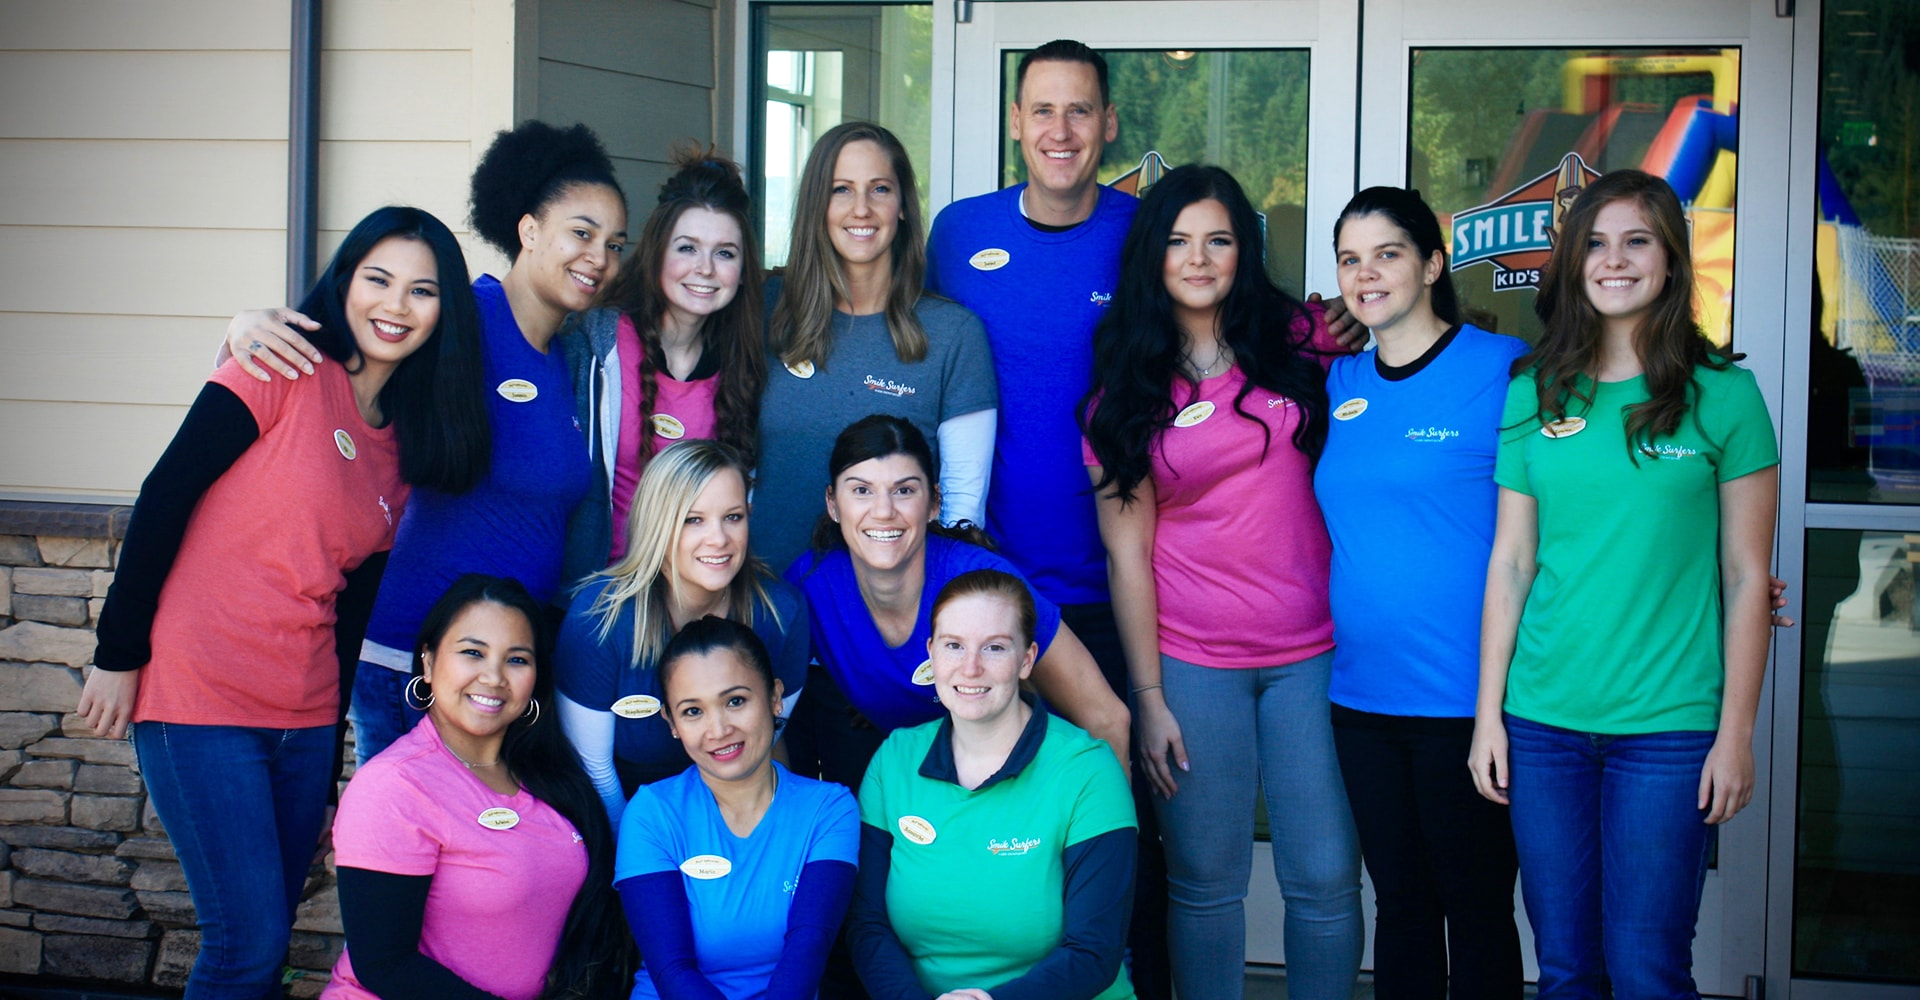 The Sumner dental team at Smile Surfers